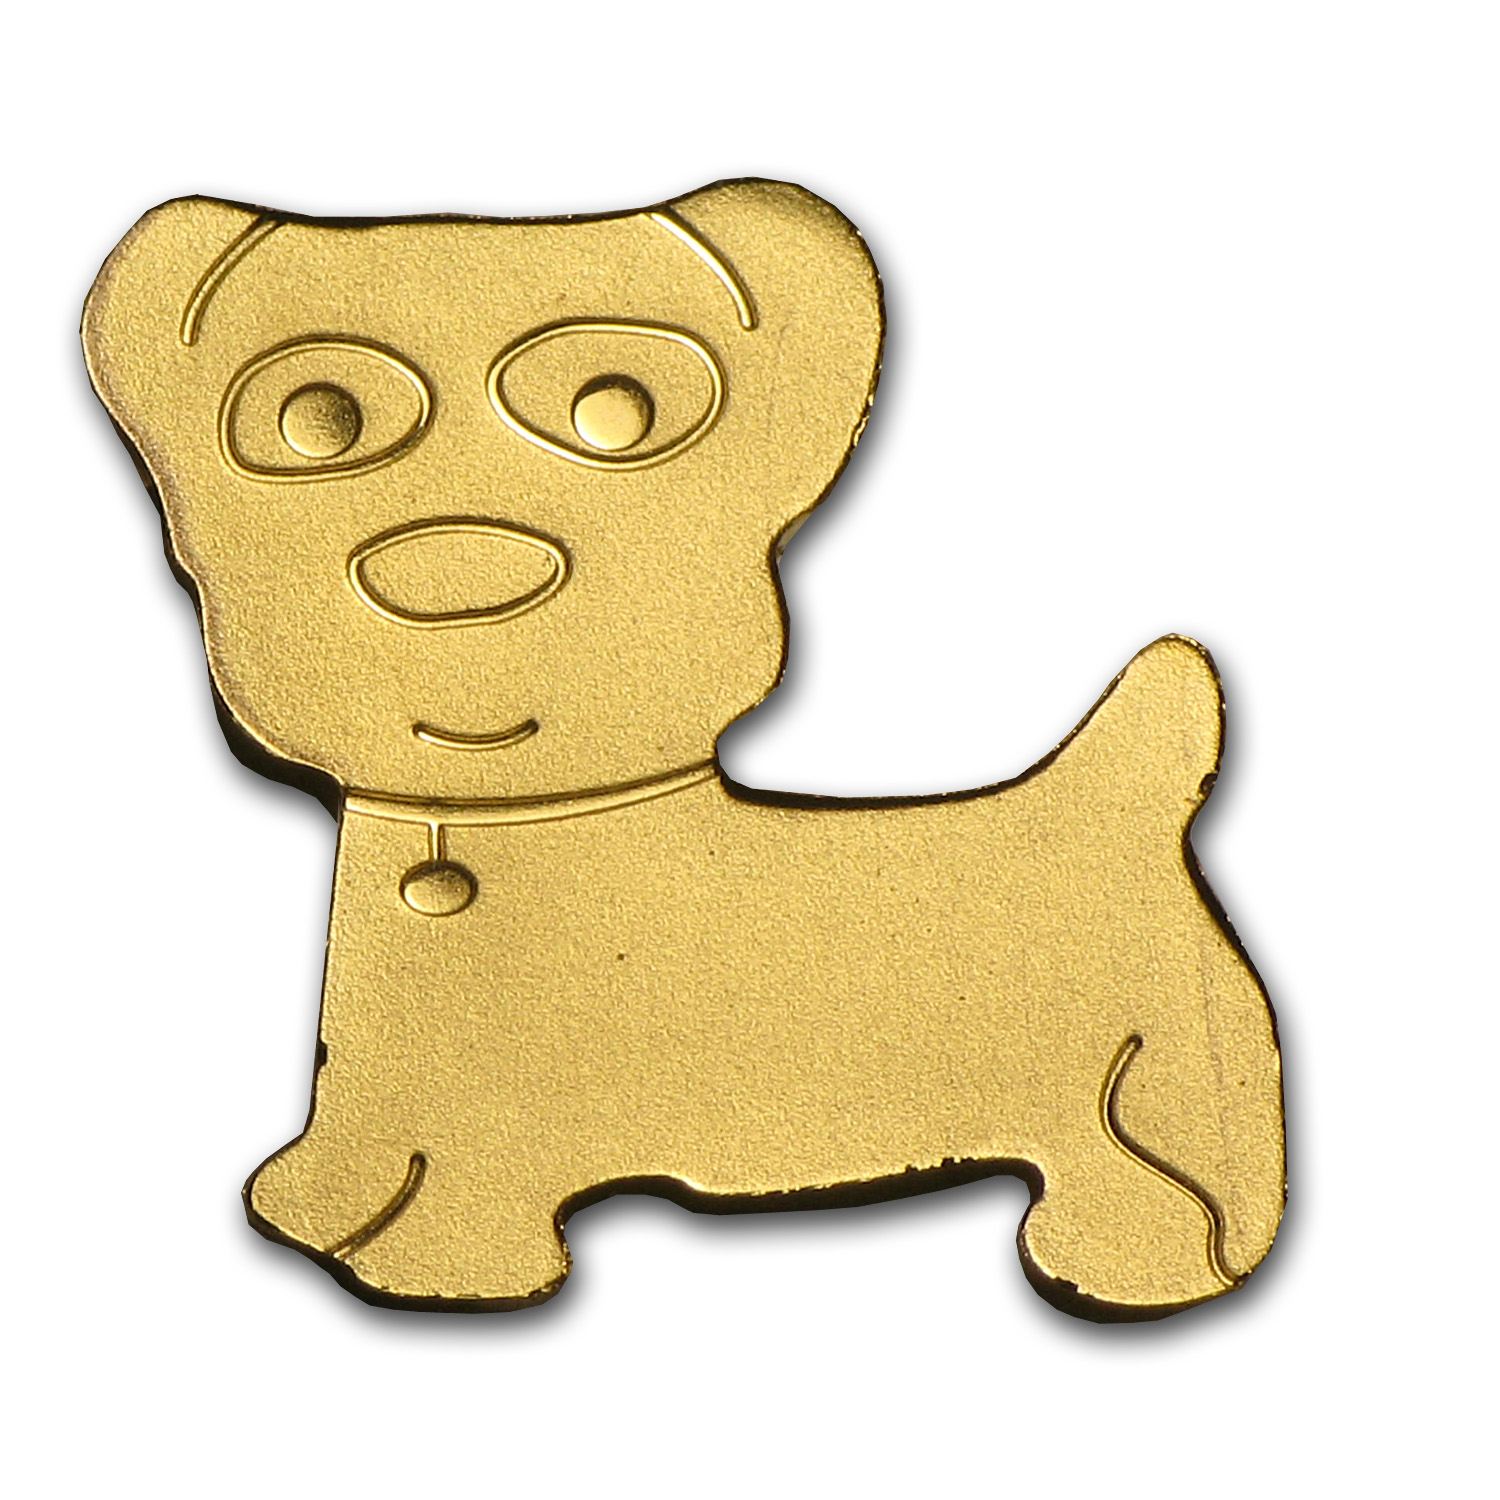 Palau Gold $1 Golden Dog (1/2 gram of Pure Gold)